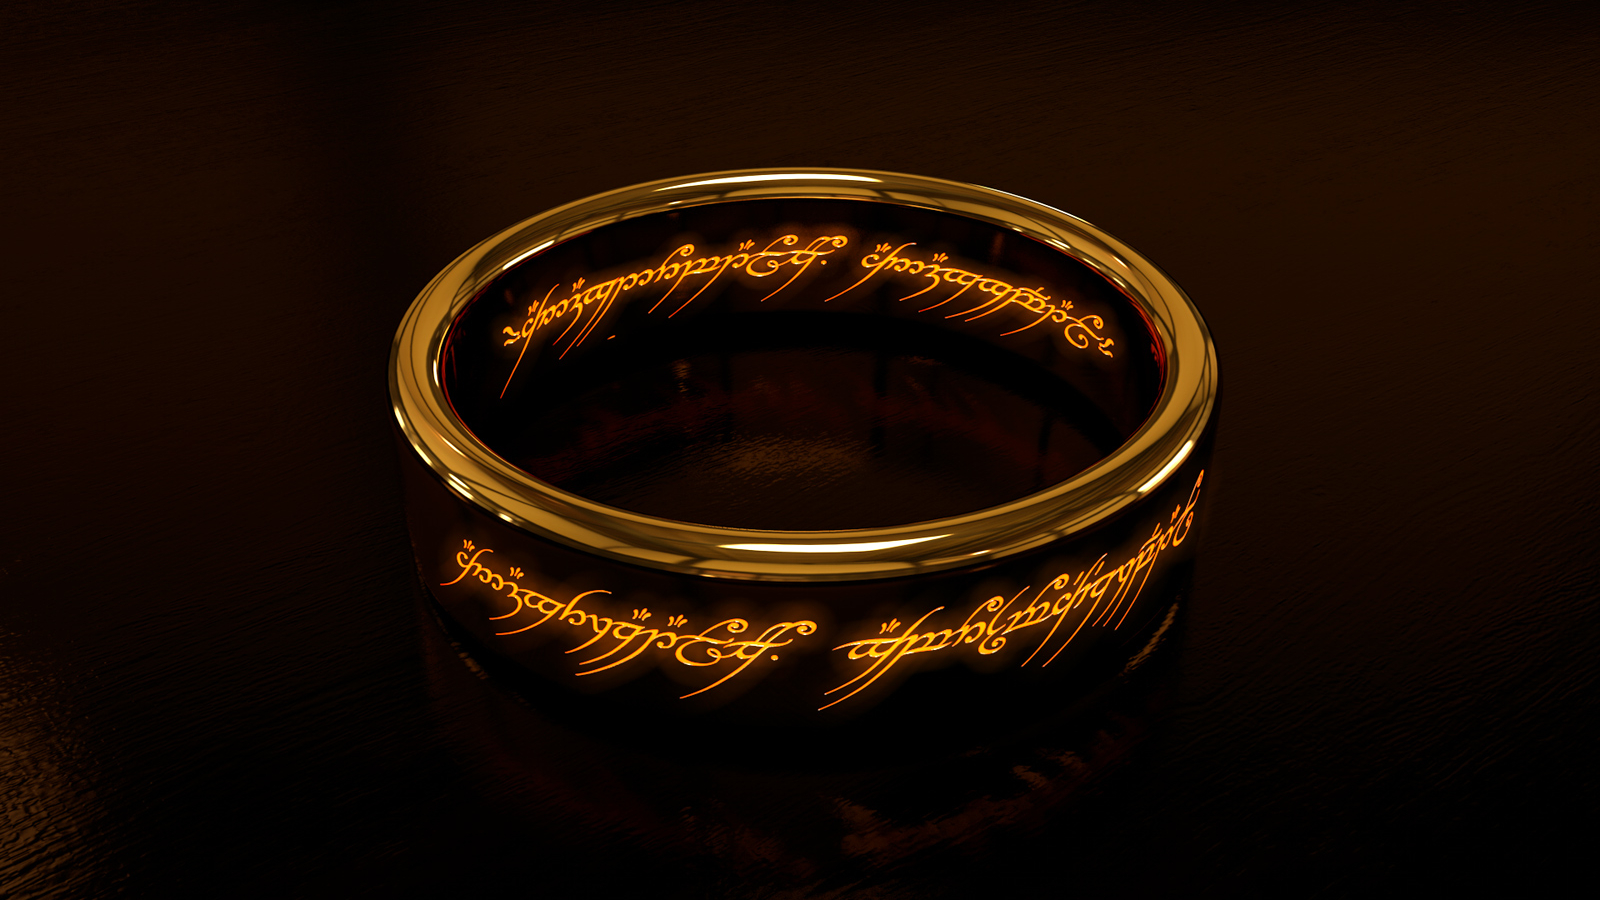 Free Download The One Ring Wallpaper Luminetrics 1600x1000